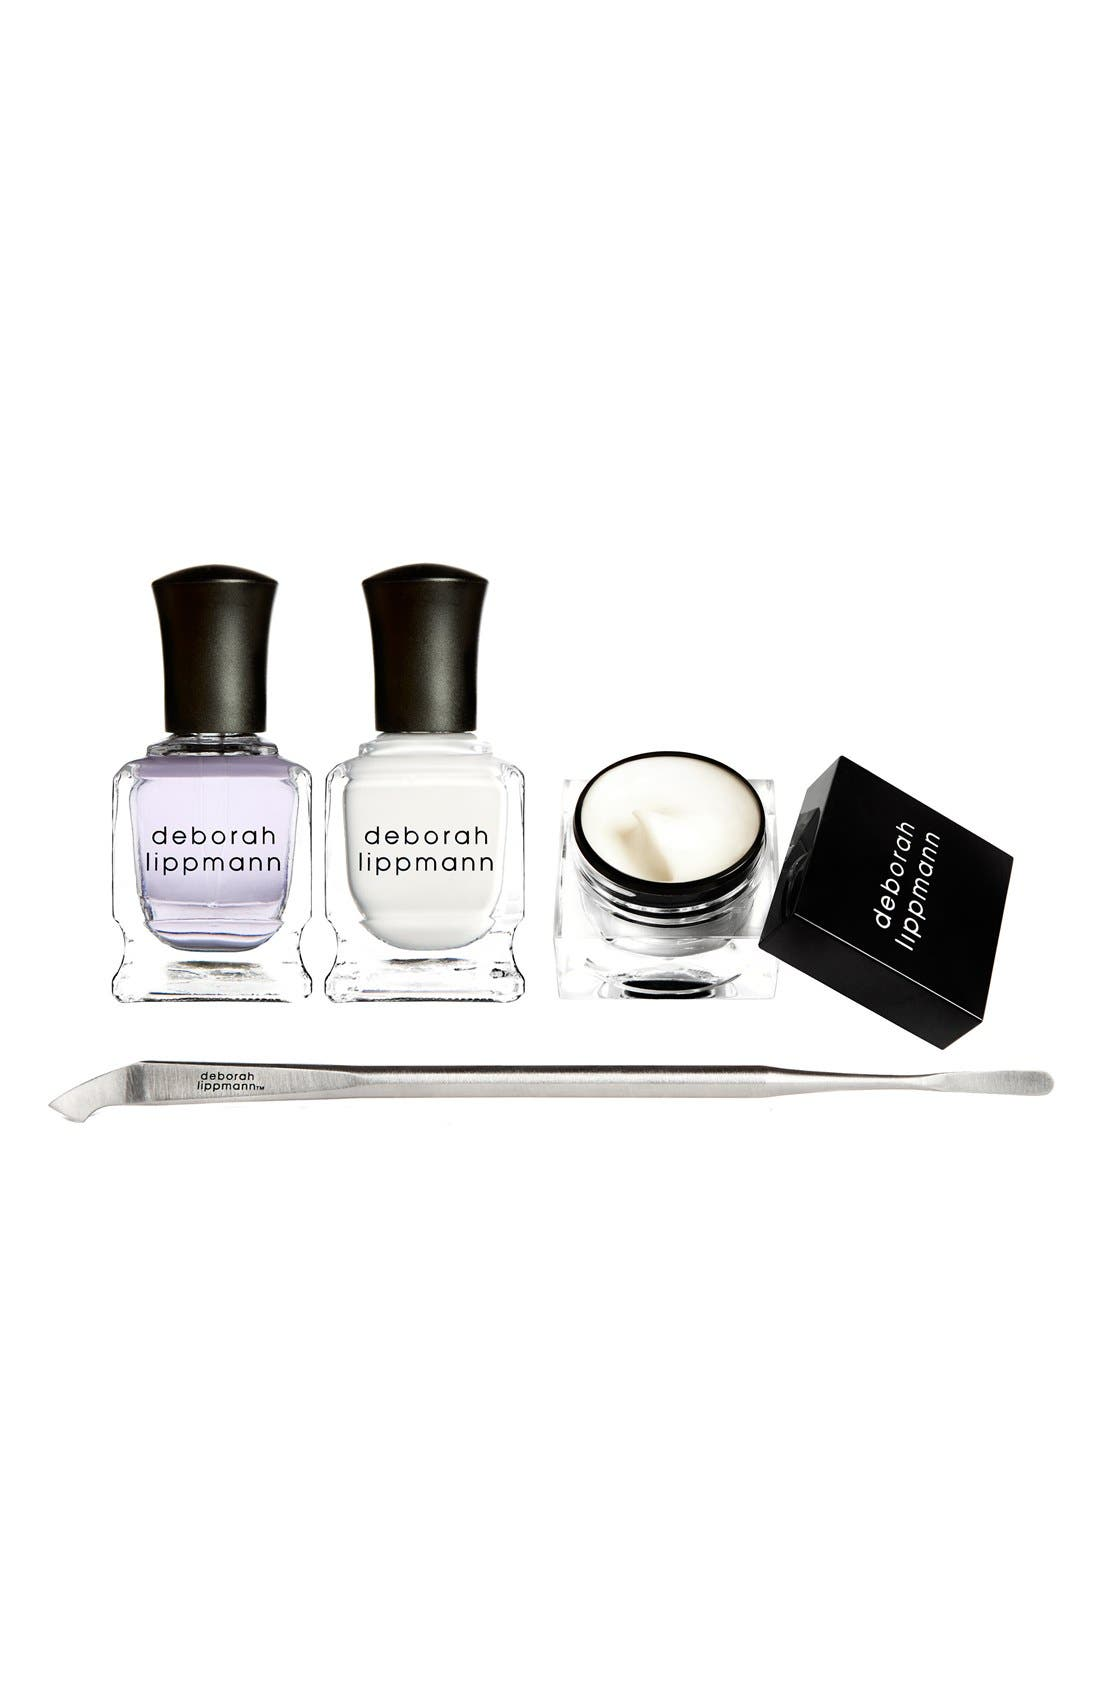 Deborah Lippmann 'Cuticle Lab' Set ($75 Value)